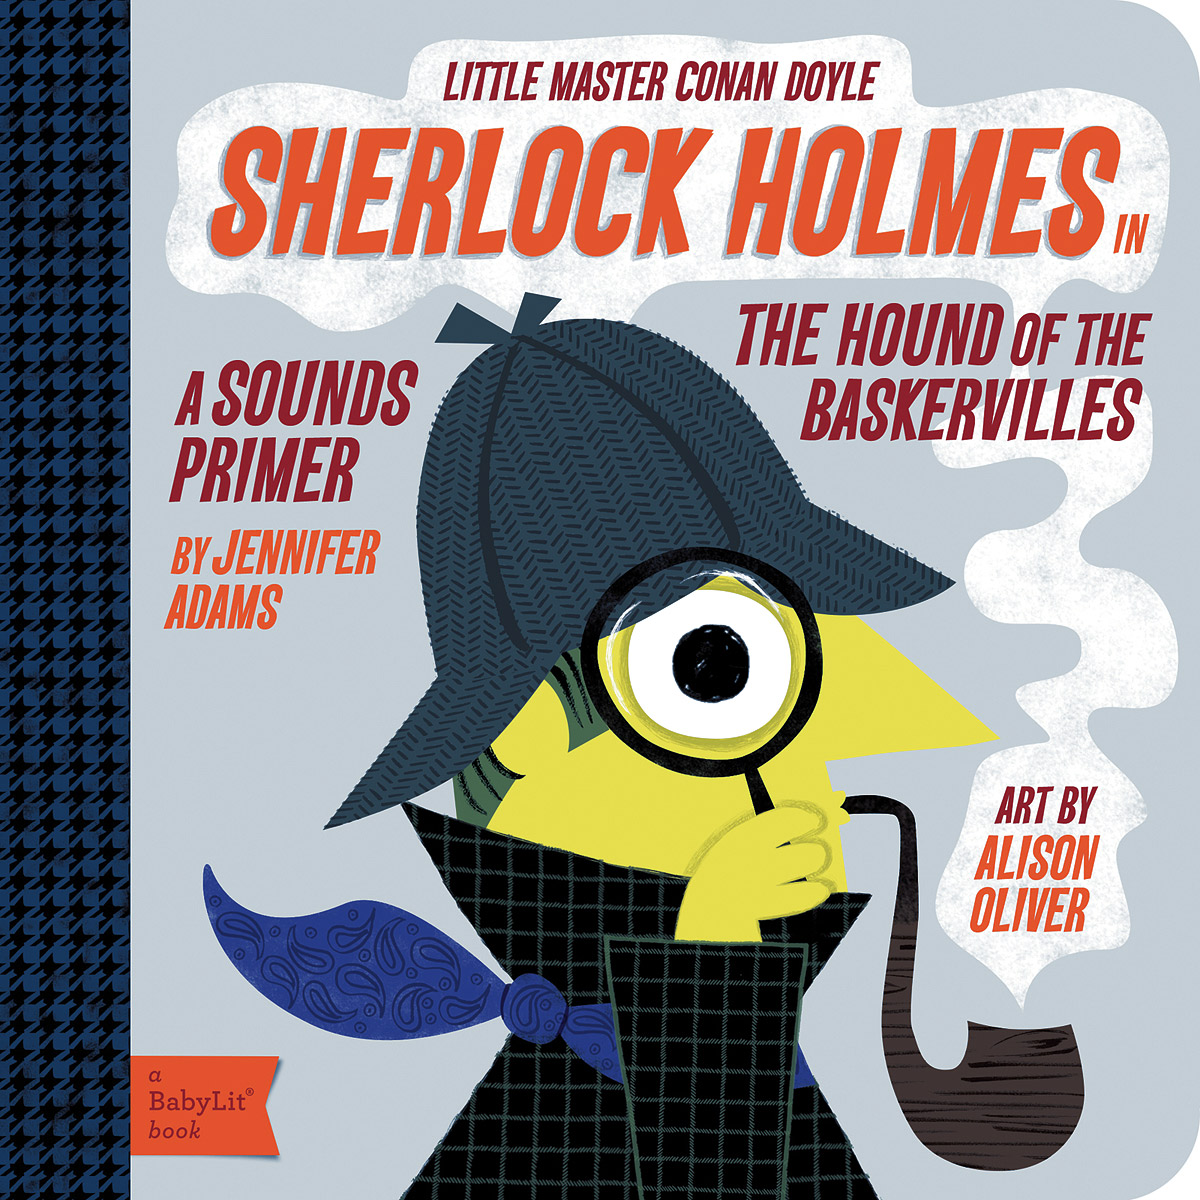 Sherlock Holmes in the Hound of the Baskervilles bilingual sherlock holmes book part i a study in scarlet in chinese and english